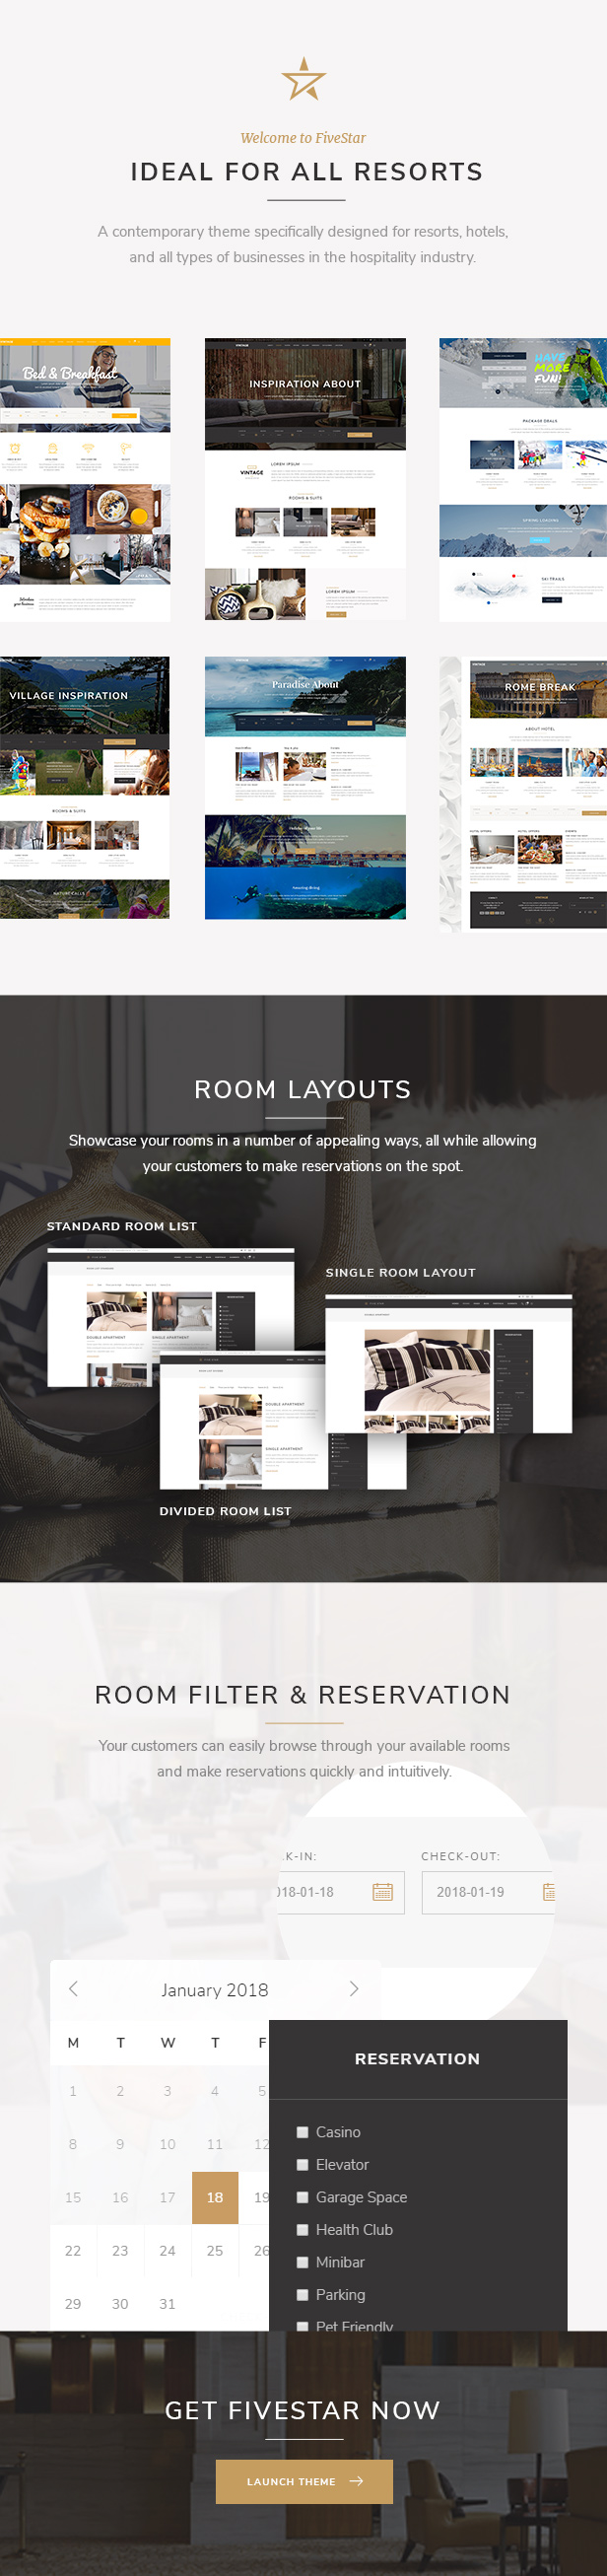 fivestar - a modern hotel and resort booking theme (travel) FiveStar – A Modern Hotel and Resort Booking Theme (Travel) 01